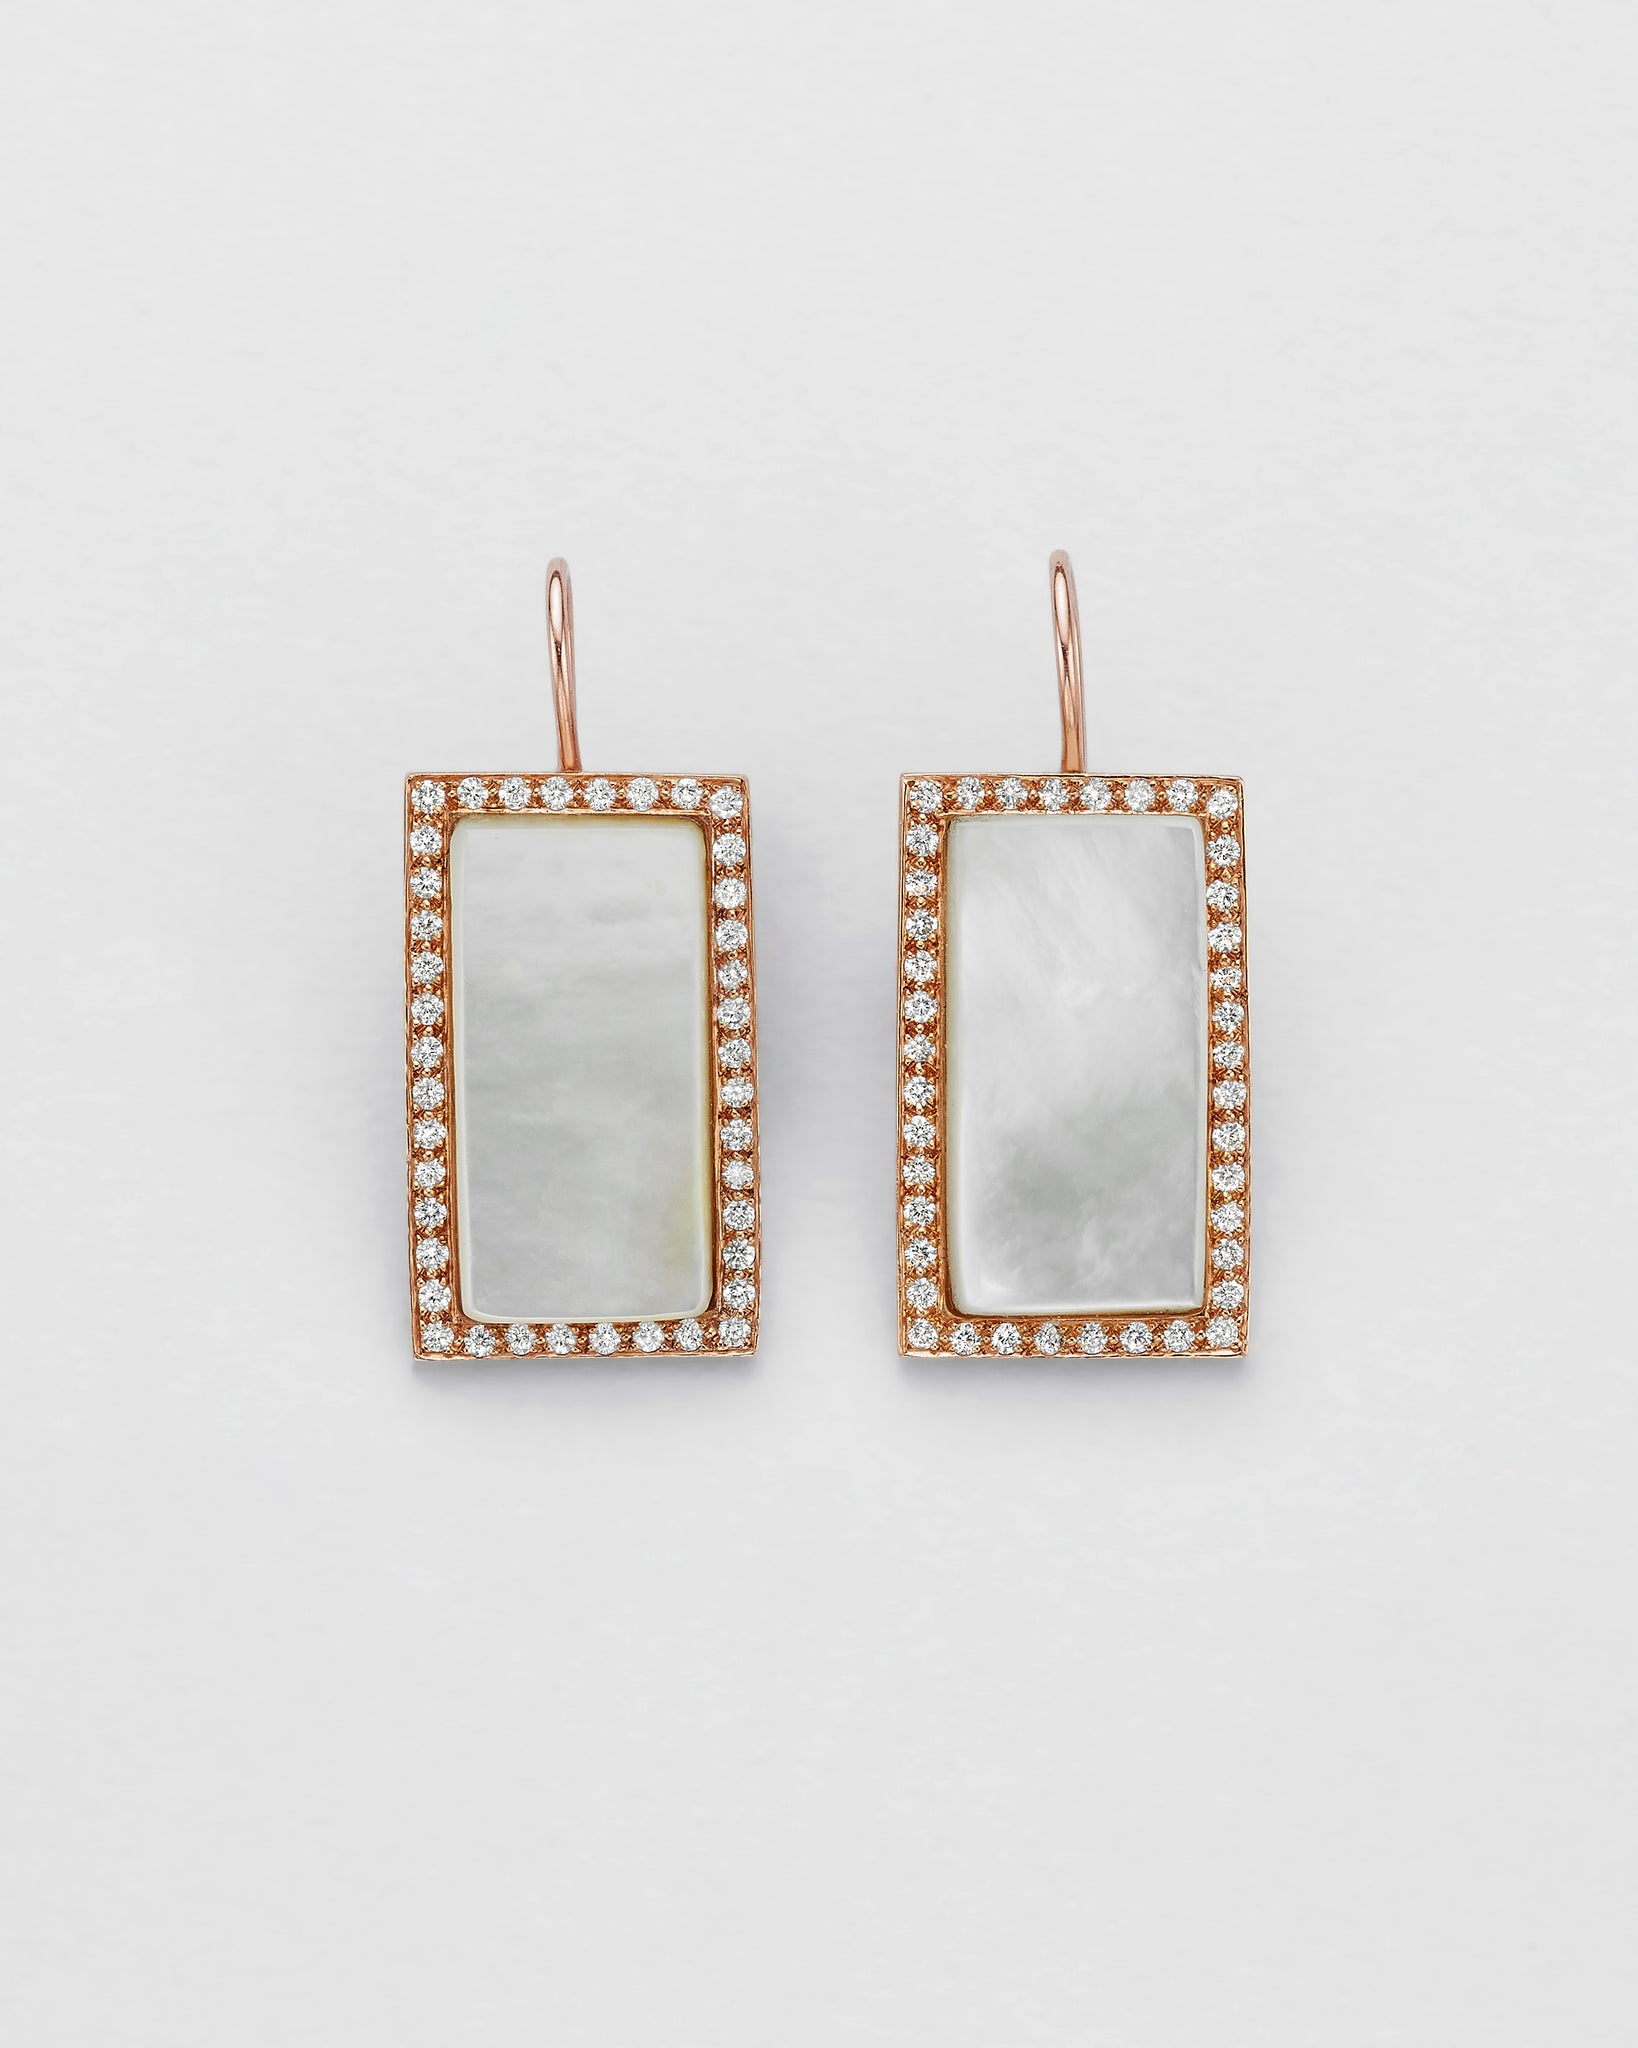 Diamond Encompassed Mother of Pearl Earrings